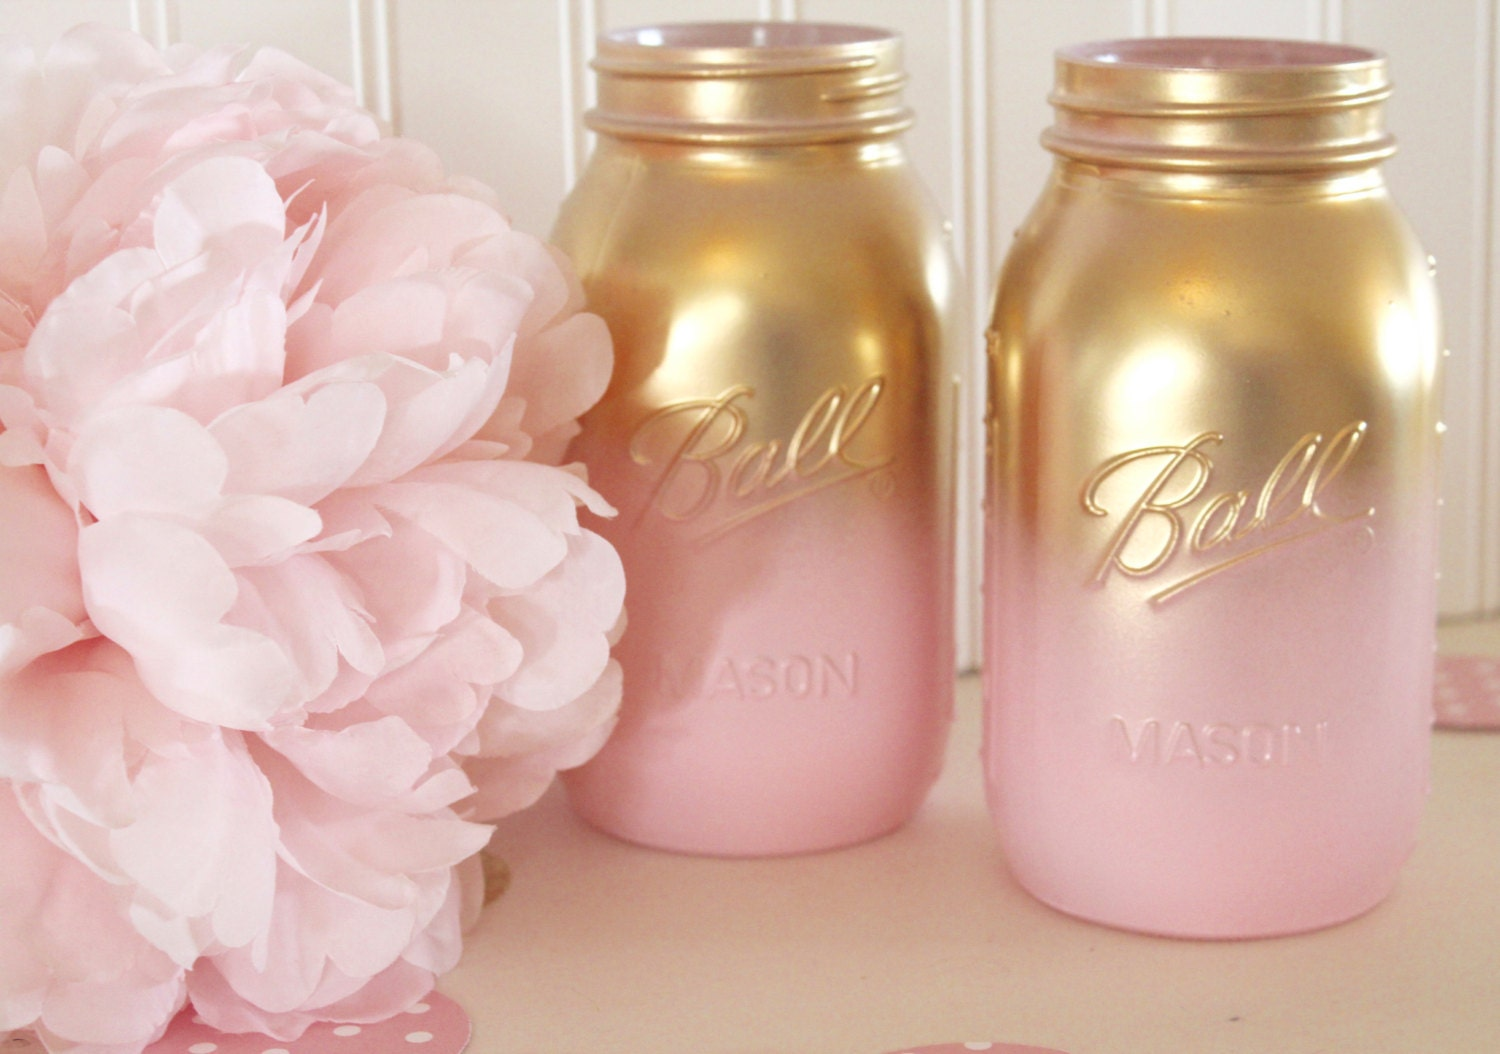 Pink and Gold Ombre Mason Jars - Gender Reveal - Baby Shower Gold Mason Jars - Bridal Shower Centerpieces - Gold Mason Jars - Gold Mason Jar